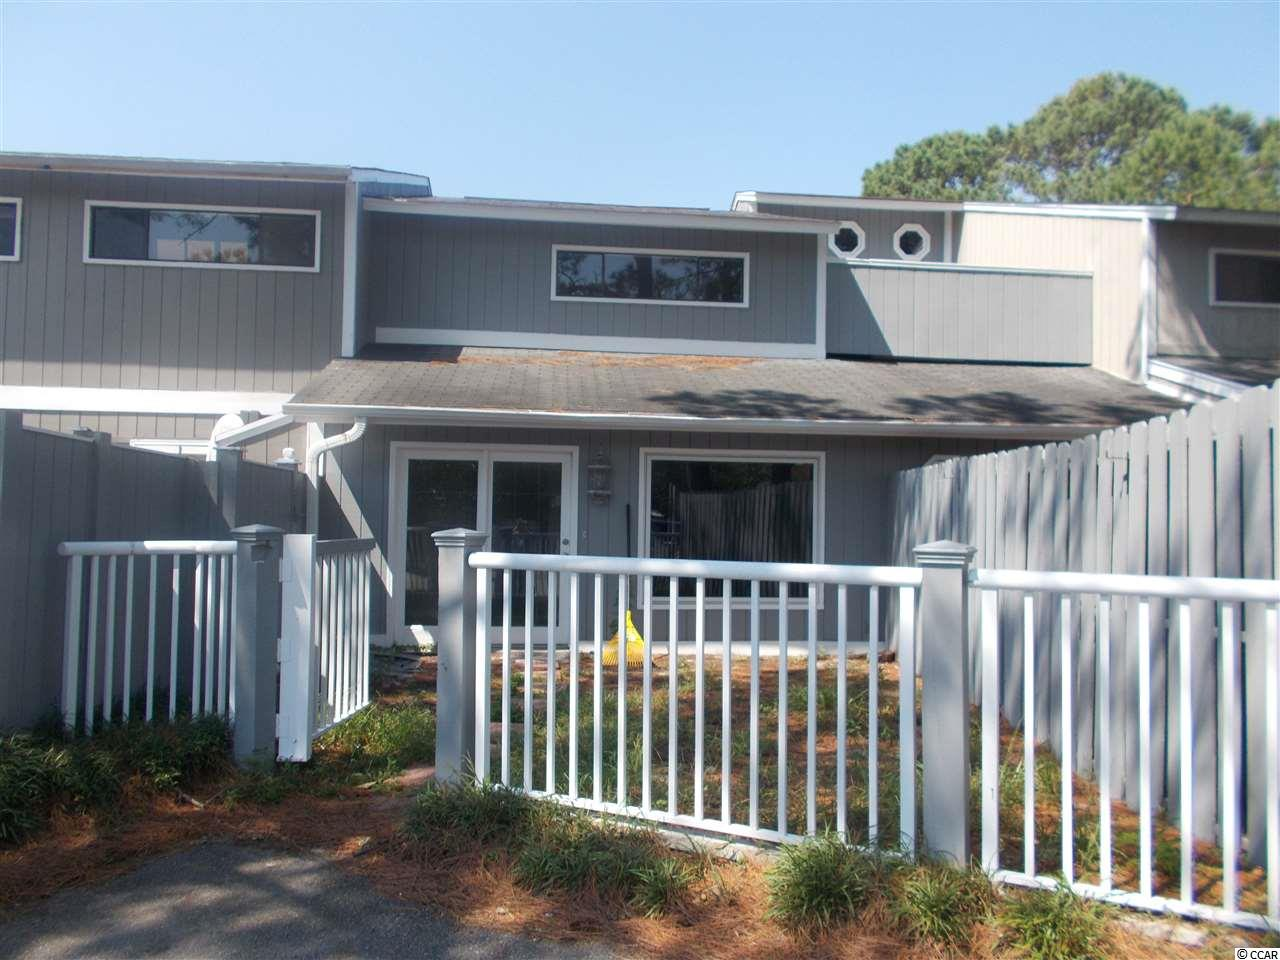 HUGE TWO STORY TOWNHOME WITH VERY LOW FEES. NEW ROOF, ALL NEW STAINLESS STEEL APPLIANCES, PAINT, FLOORING, CABINETS AND GRANITE COUNTERTOPS.  VERY LARGE ROOMS AND CLOSETS WITH TONS OF STORAGE.  EXTREMELY LARGE SECOND FLOOR BALCONY THAT IS PERFECT FOR ENTERTAINING OR RELAXING WITH FAMILY.  FENCED FRONT YARD. GOLF CART RIDE TO THE BEACH, SHOPPING, ENTERTAINMENT AND GOLF.